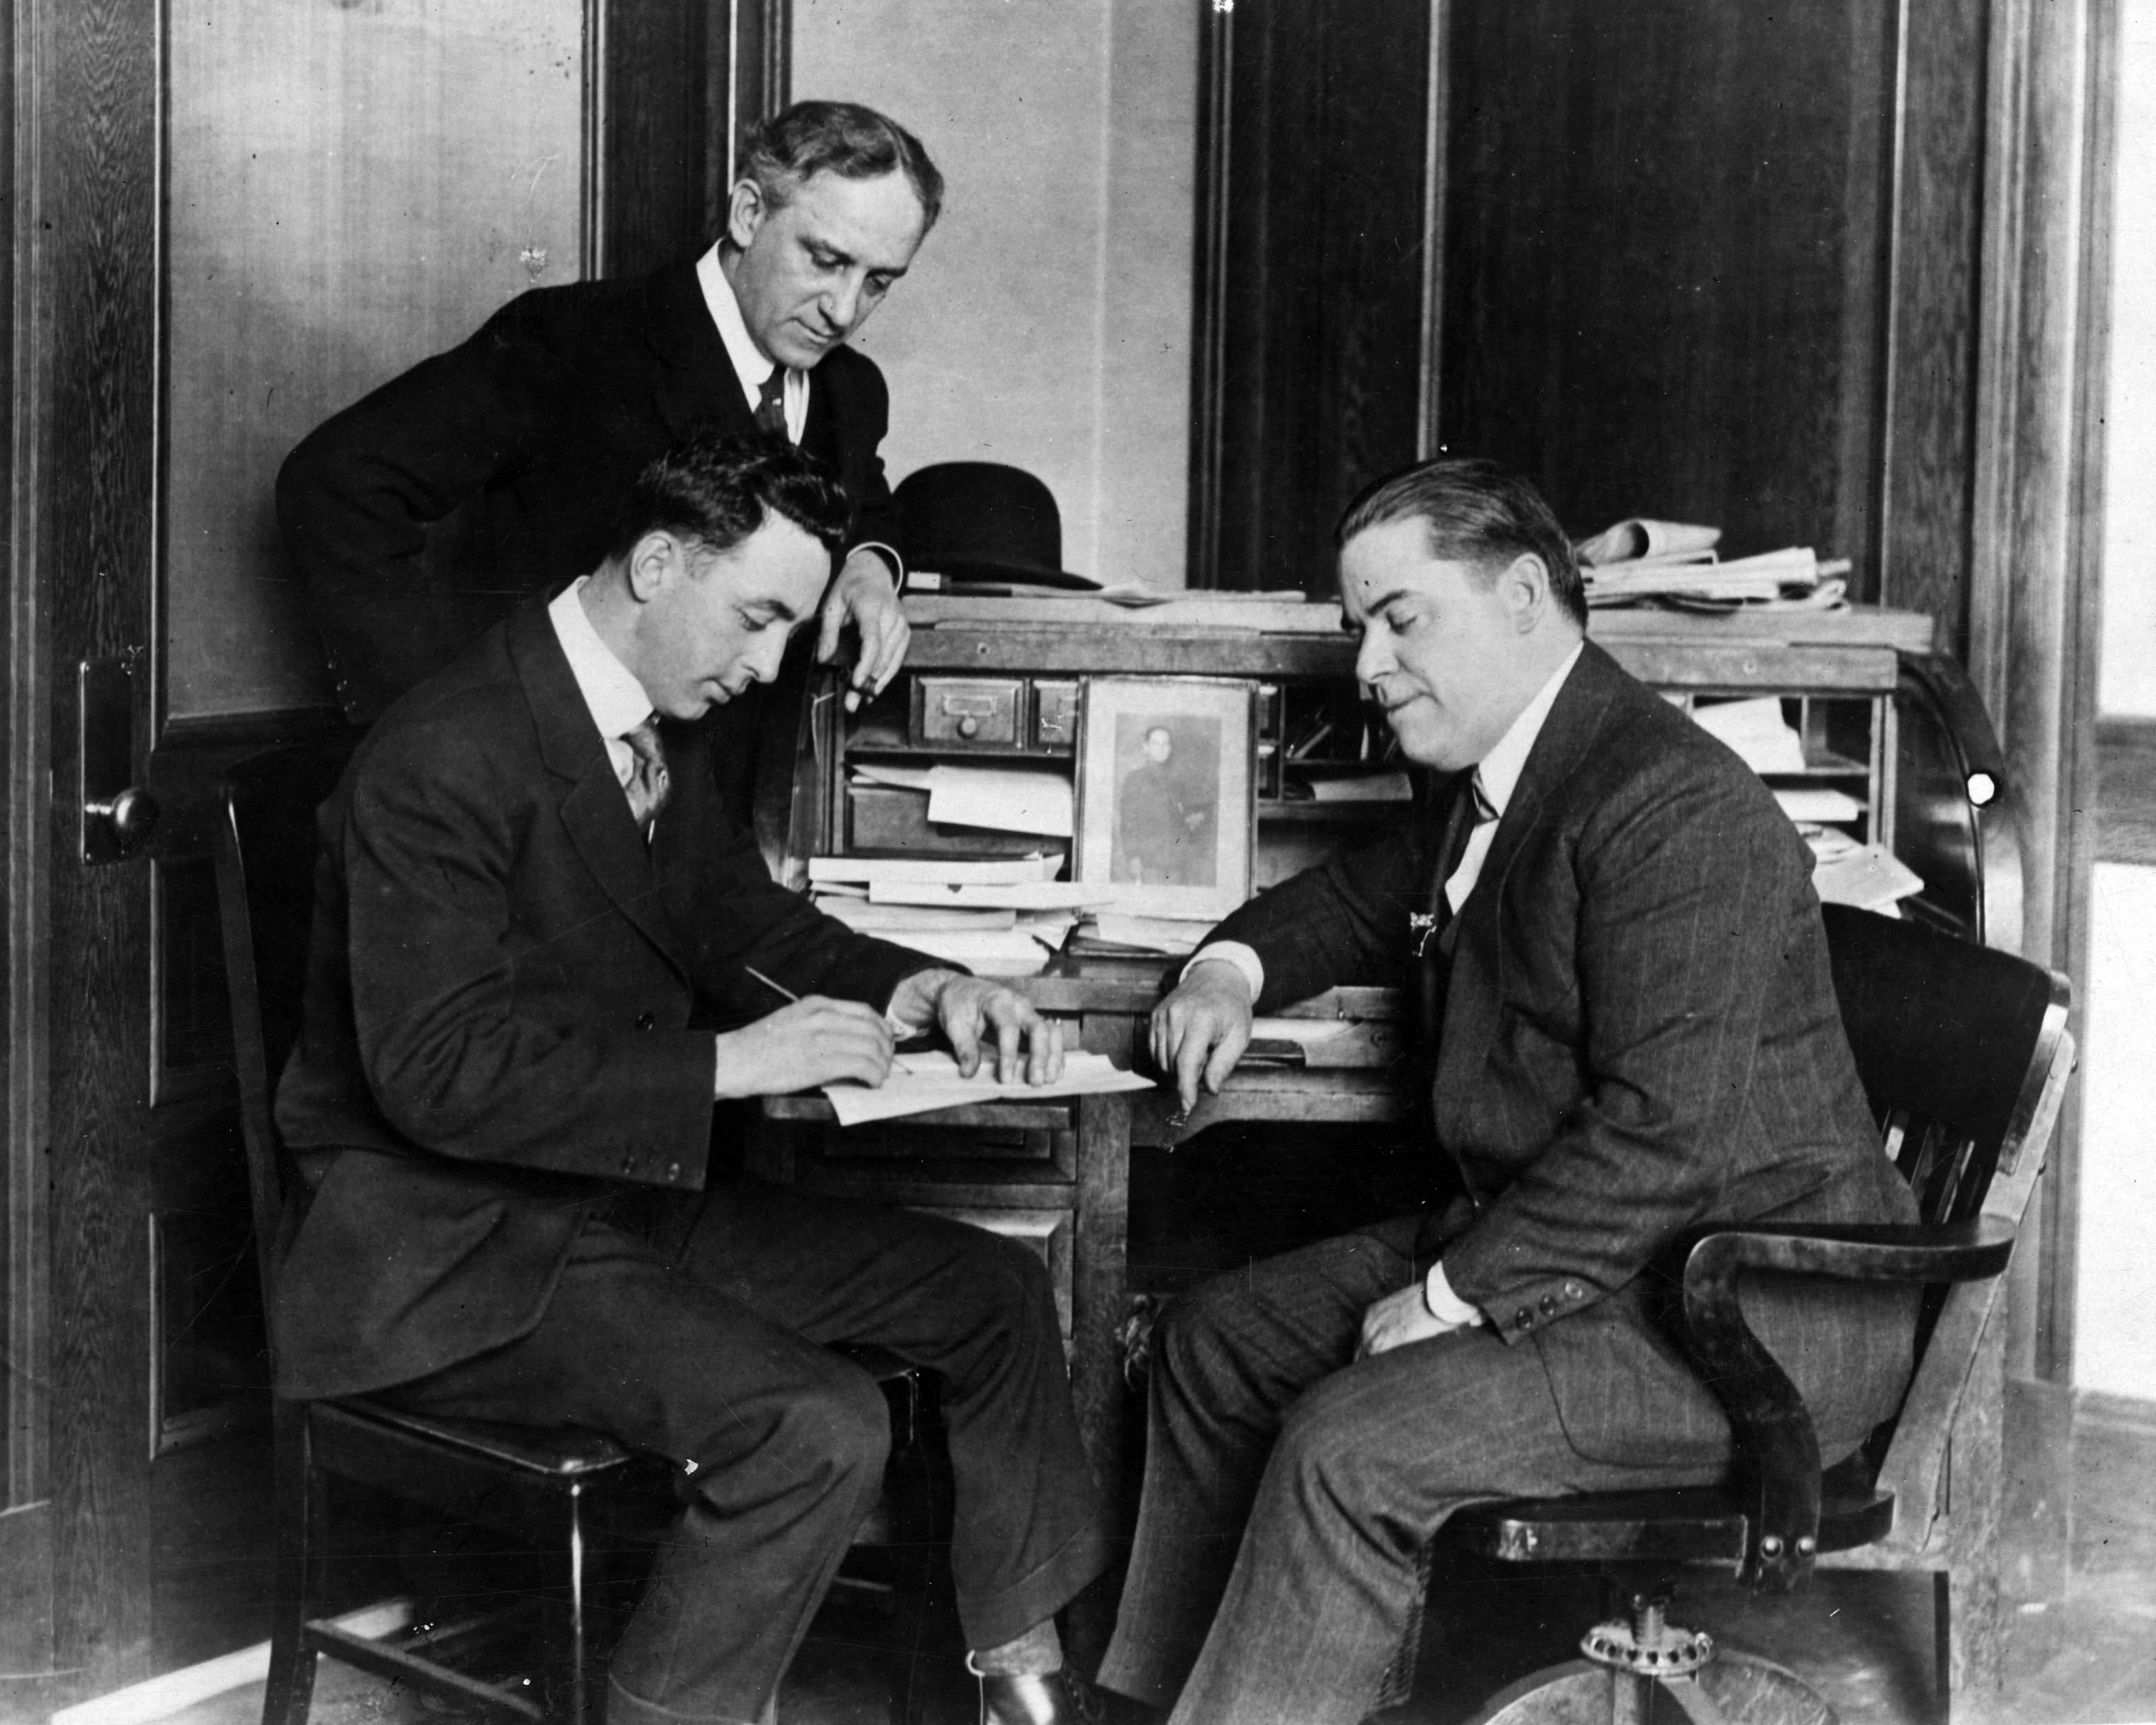 Red Sox player-manager, left, signs his 1917 contract as owner Frazee looks on.